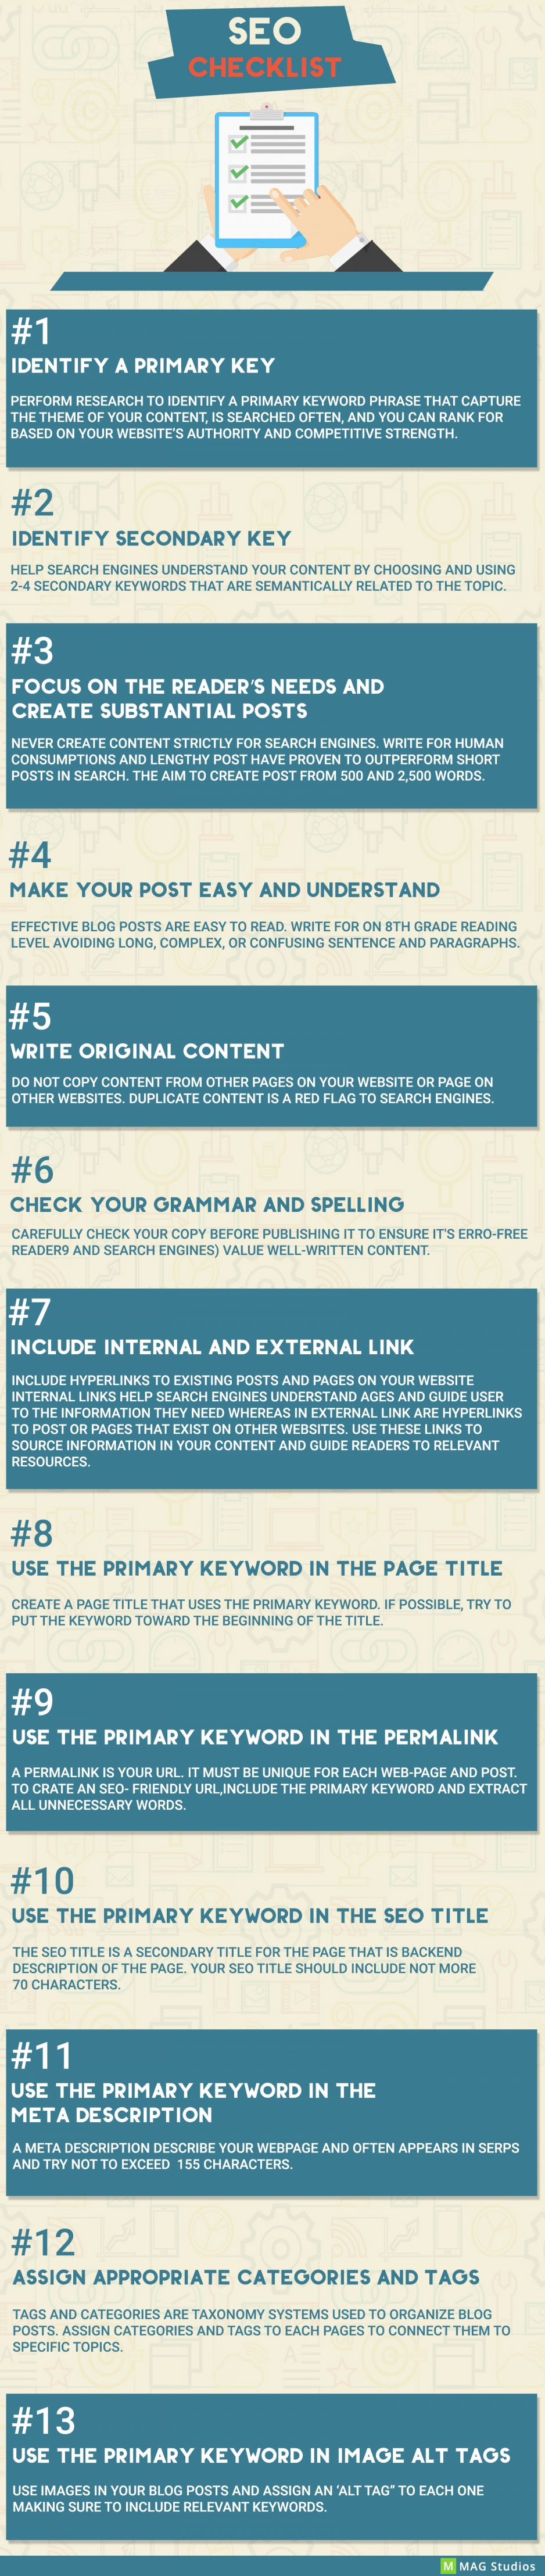 SEO CHECKLIST TO CHANGE YOUR RANKING GAME!